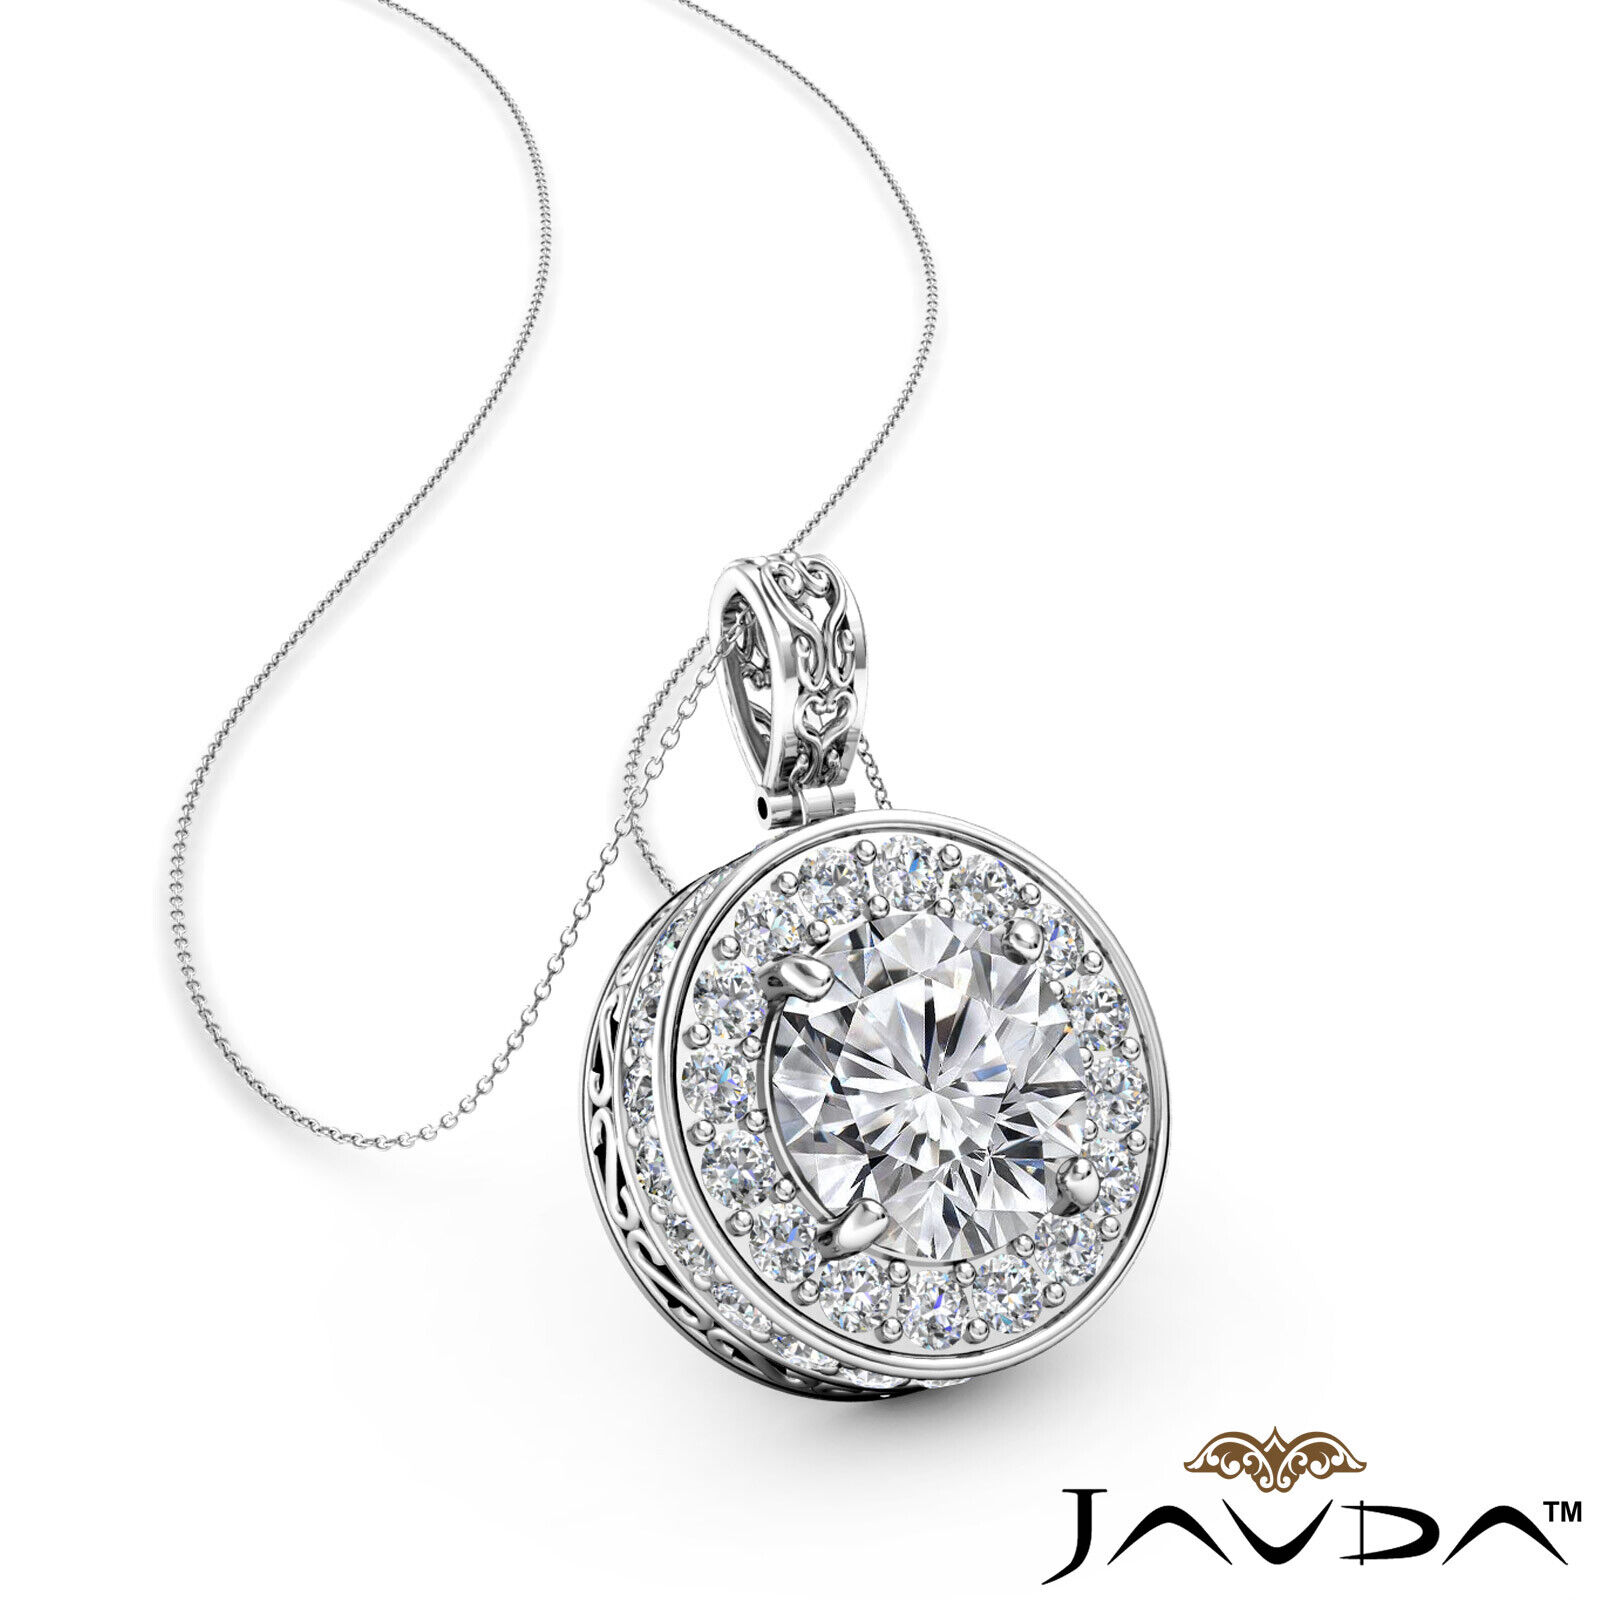 Circa Halo Pave Set Round Diamond Filigree Design Pendant 18 Inch Chain 1.1ctw.